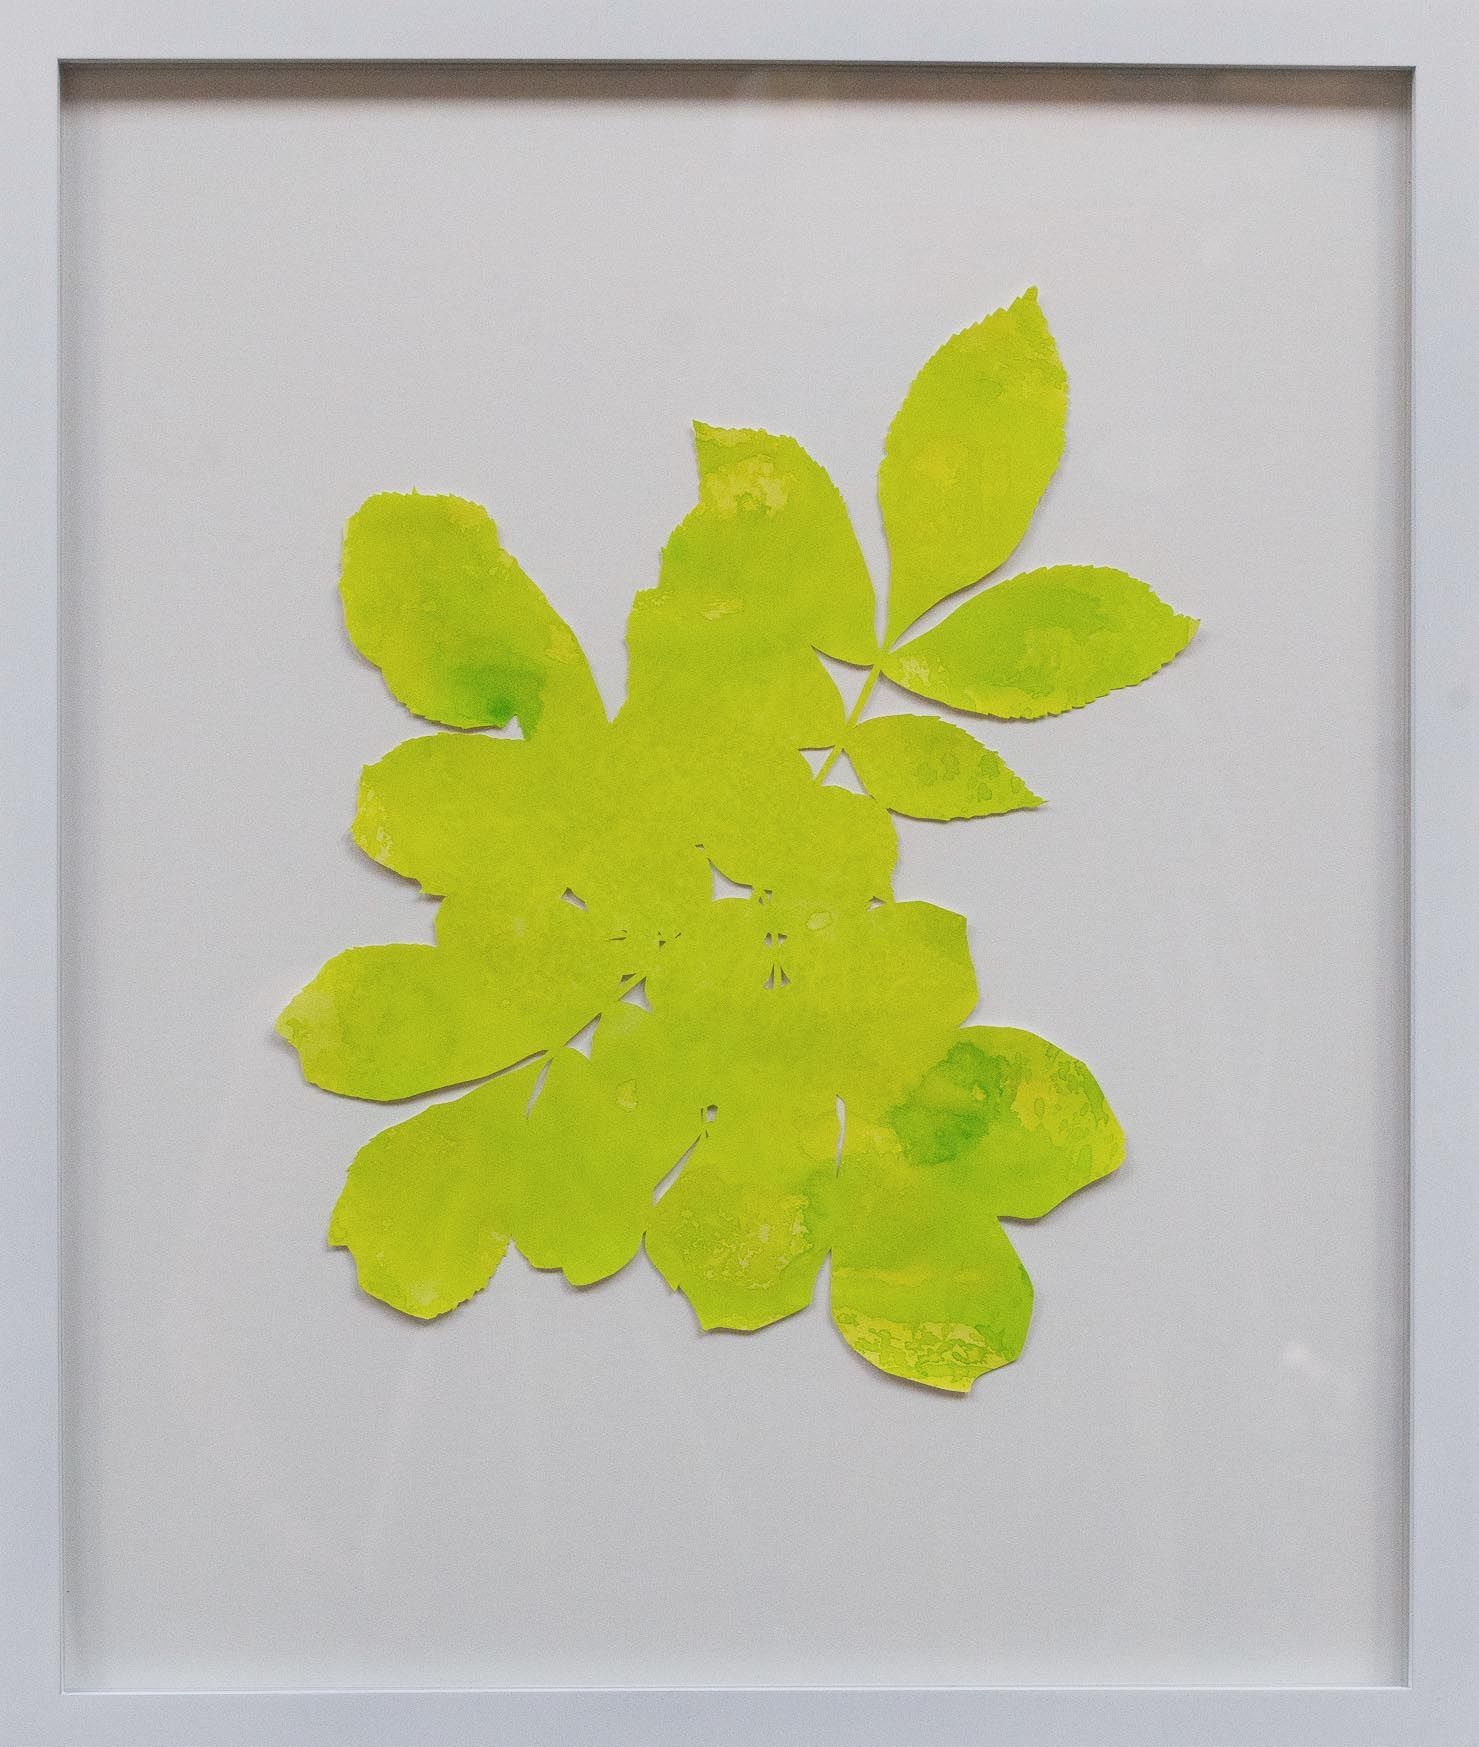 Hannah Cole  Untitled Yellow Weed, 2018  watercolor on cut paper  Framed: 24h x 20w in 60.96h x 50.80w cm  HC_046